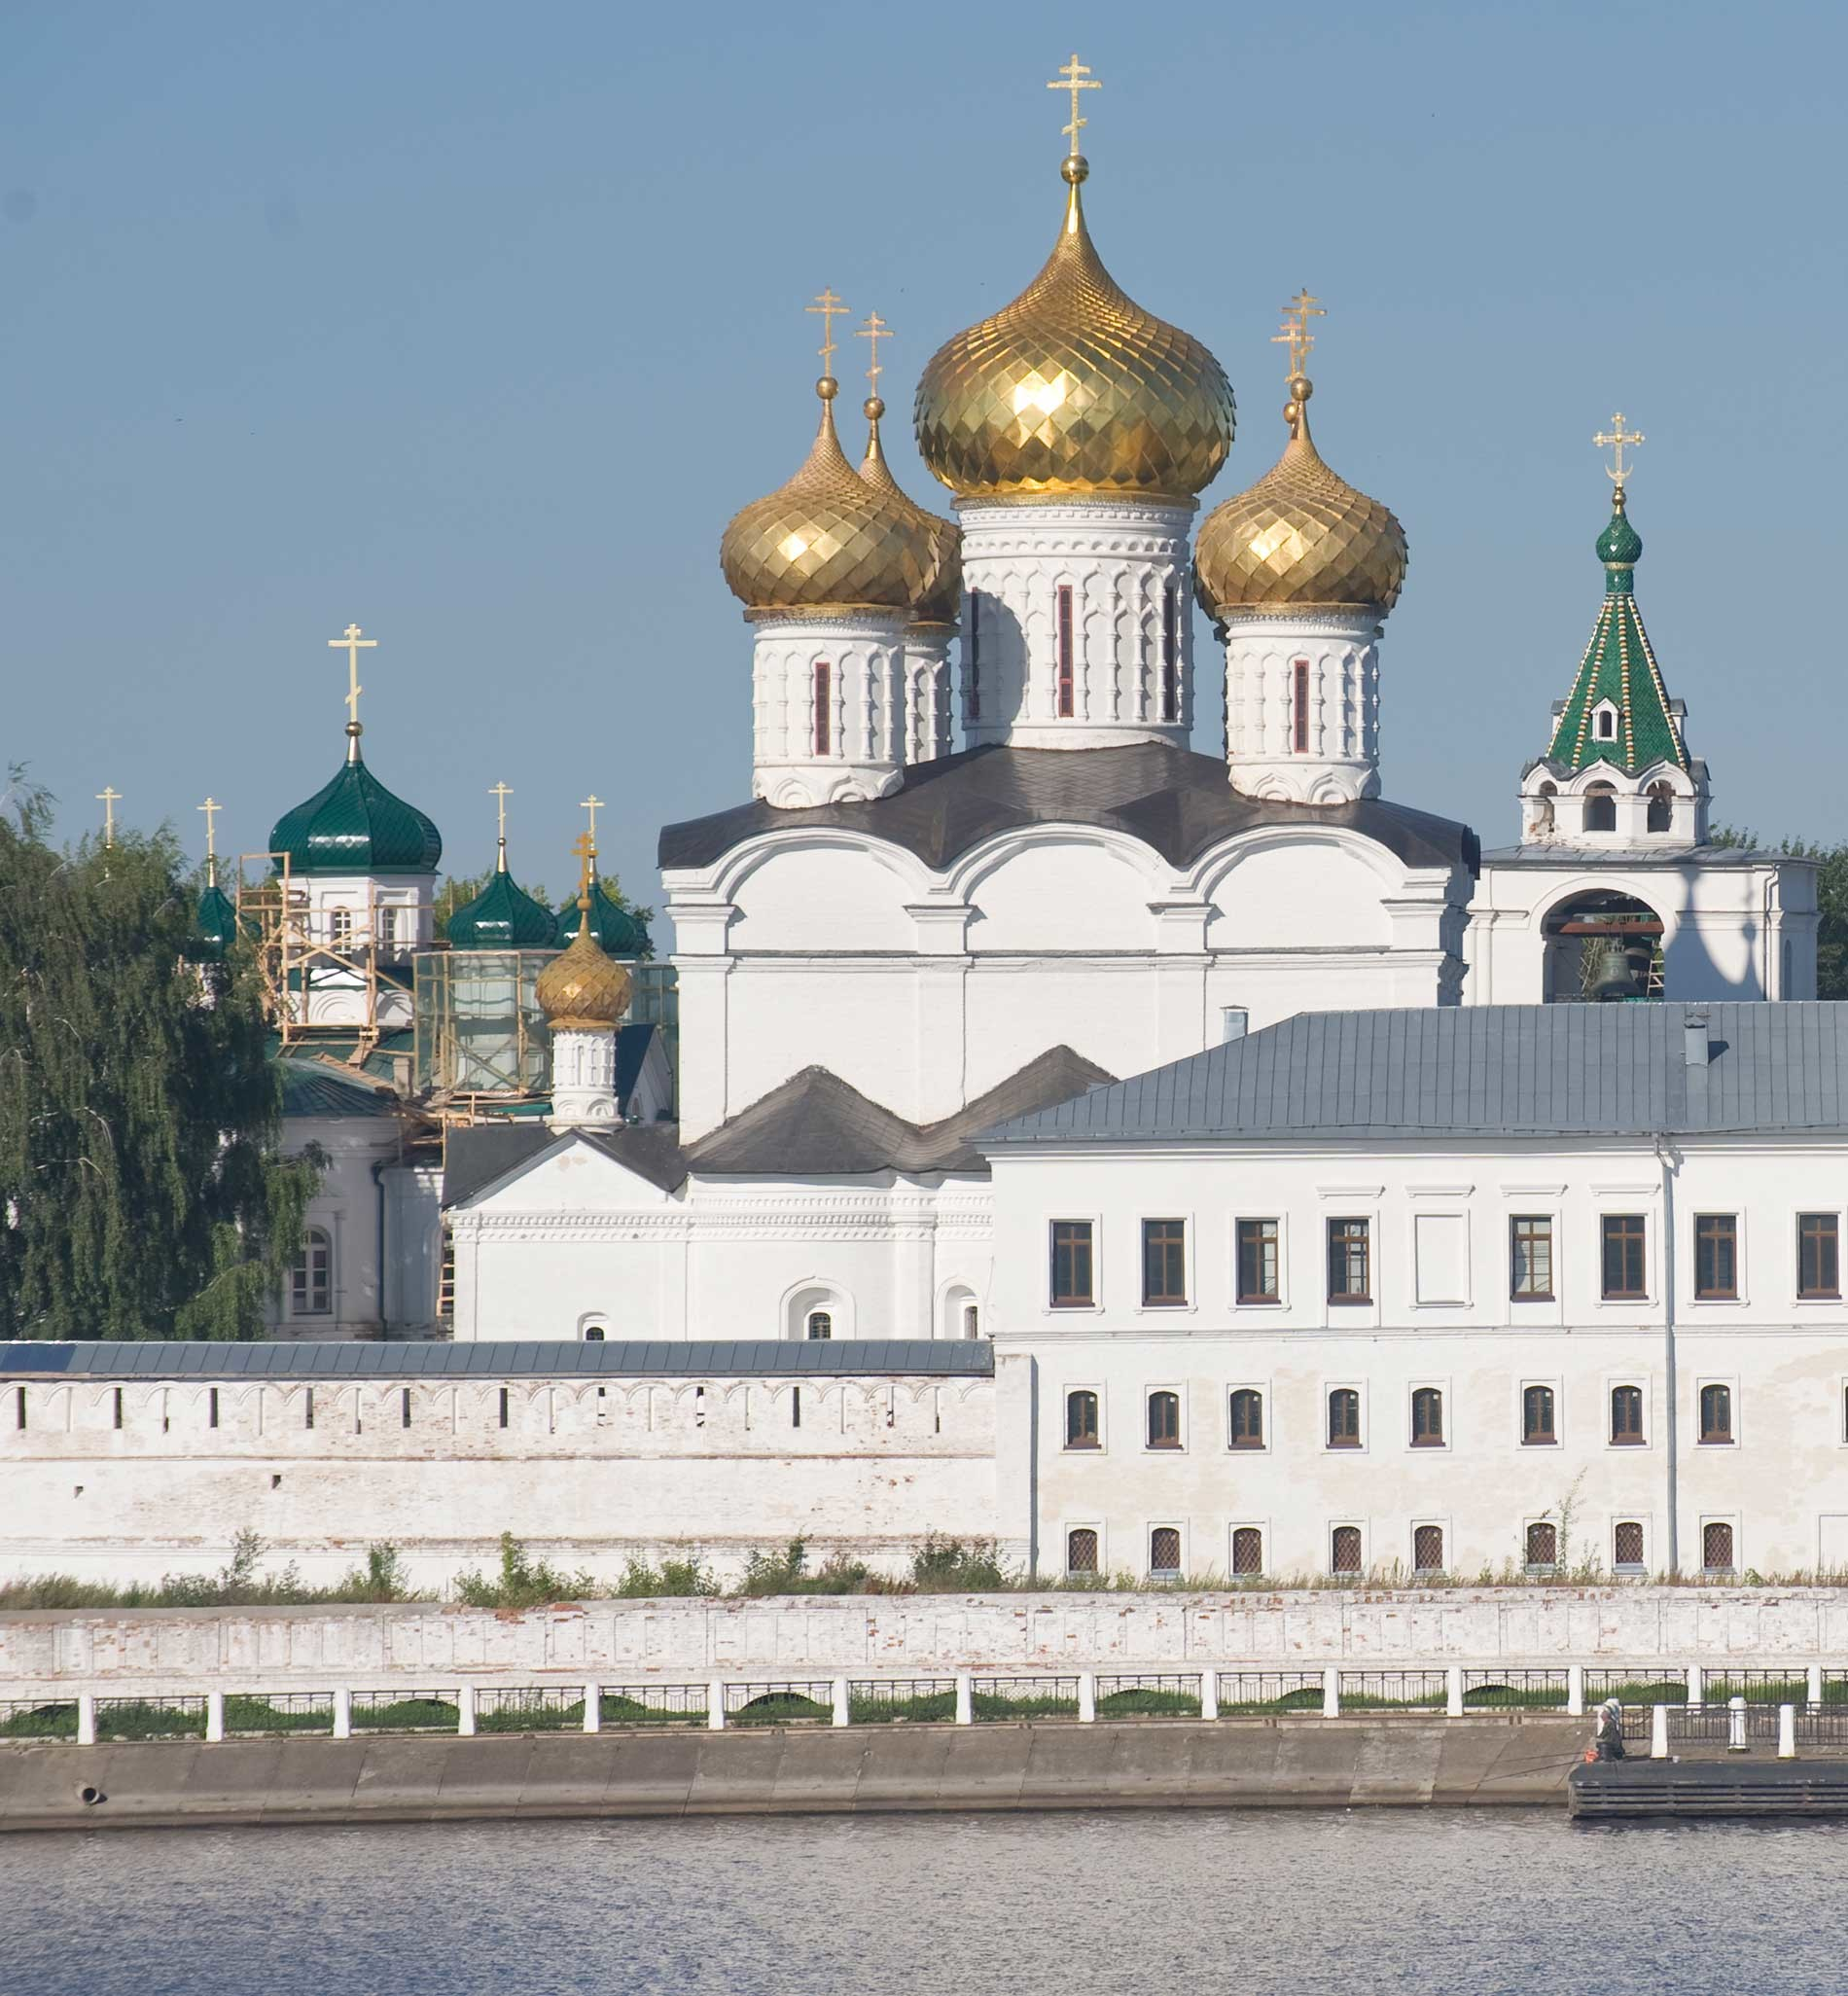 Trinity-Ipatiev Monastery. From left: Cathedral of Nativity of the Virgin; Trinity Cathedral; bell tower. East view across Kostroma River. Aug. 13, 2017.